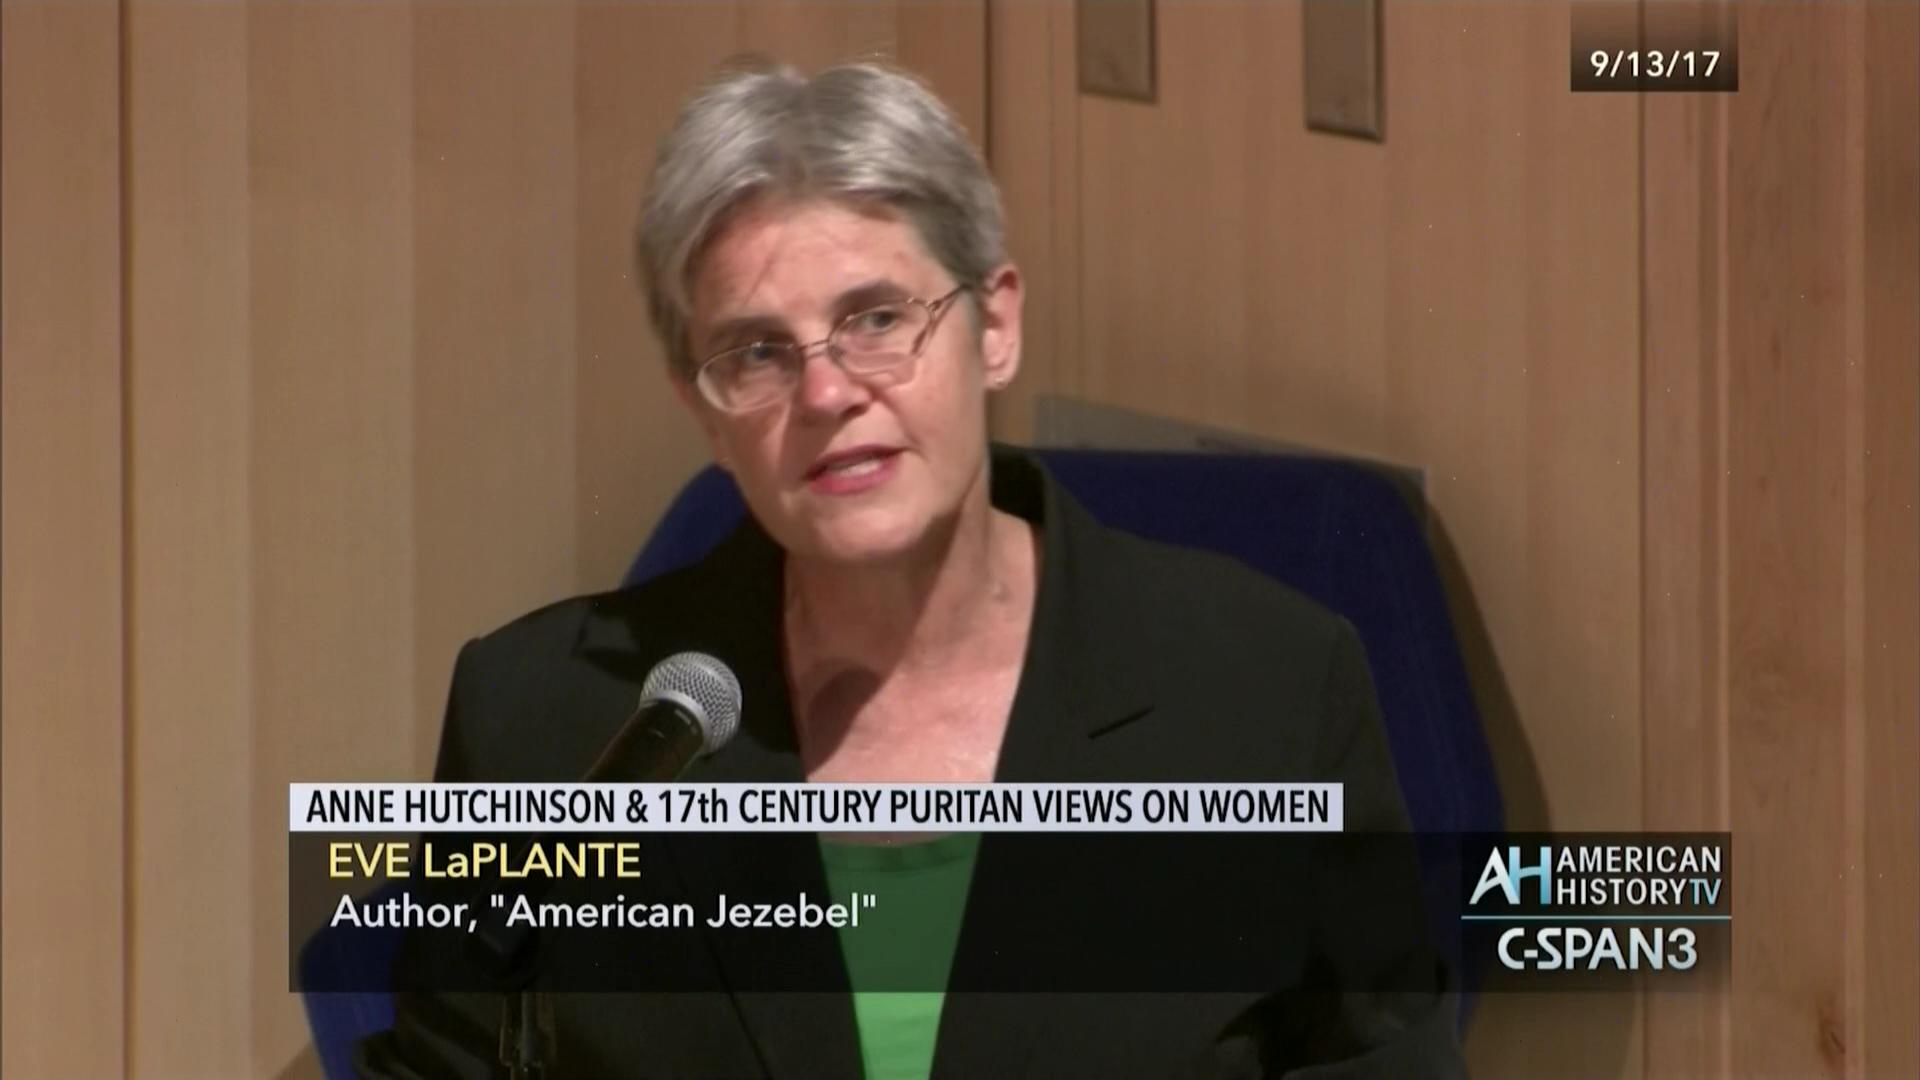 anne hutchinson th century puritan views women sep  anne hutchinson 17th century puritan views women sep 13 2017 video c span org